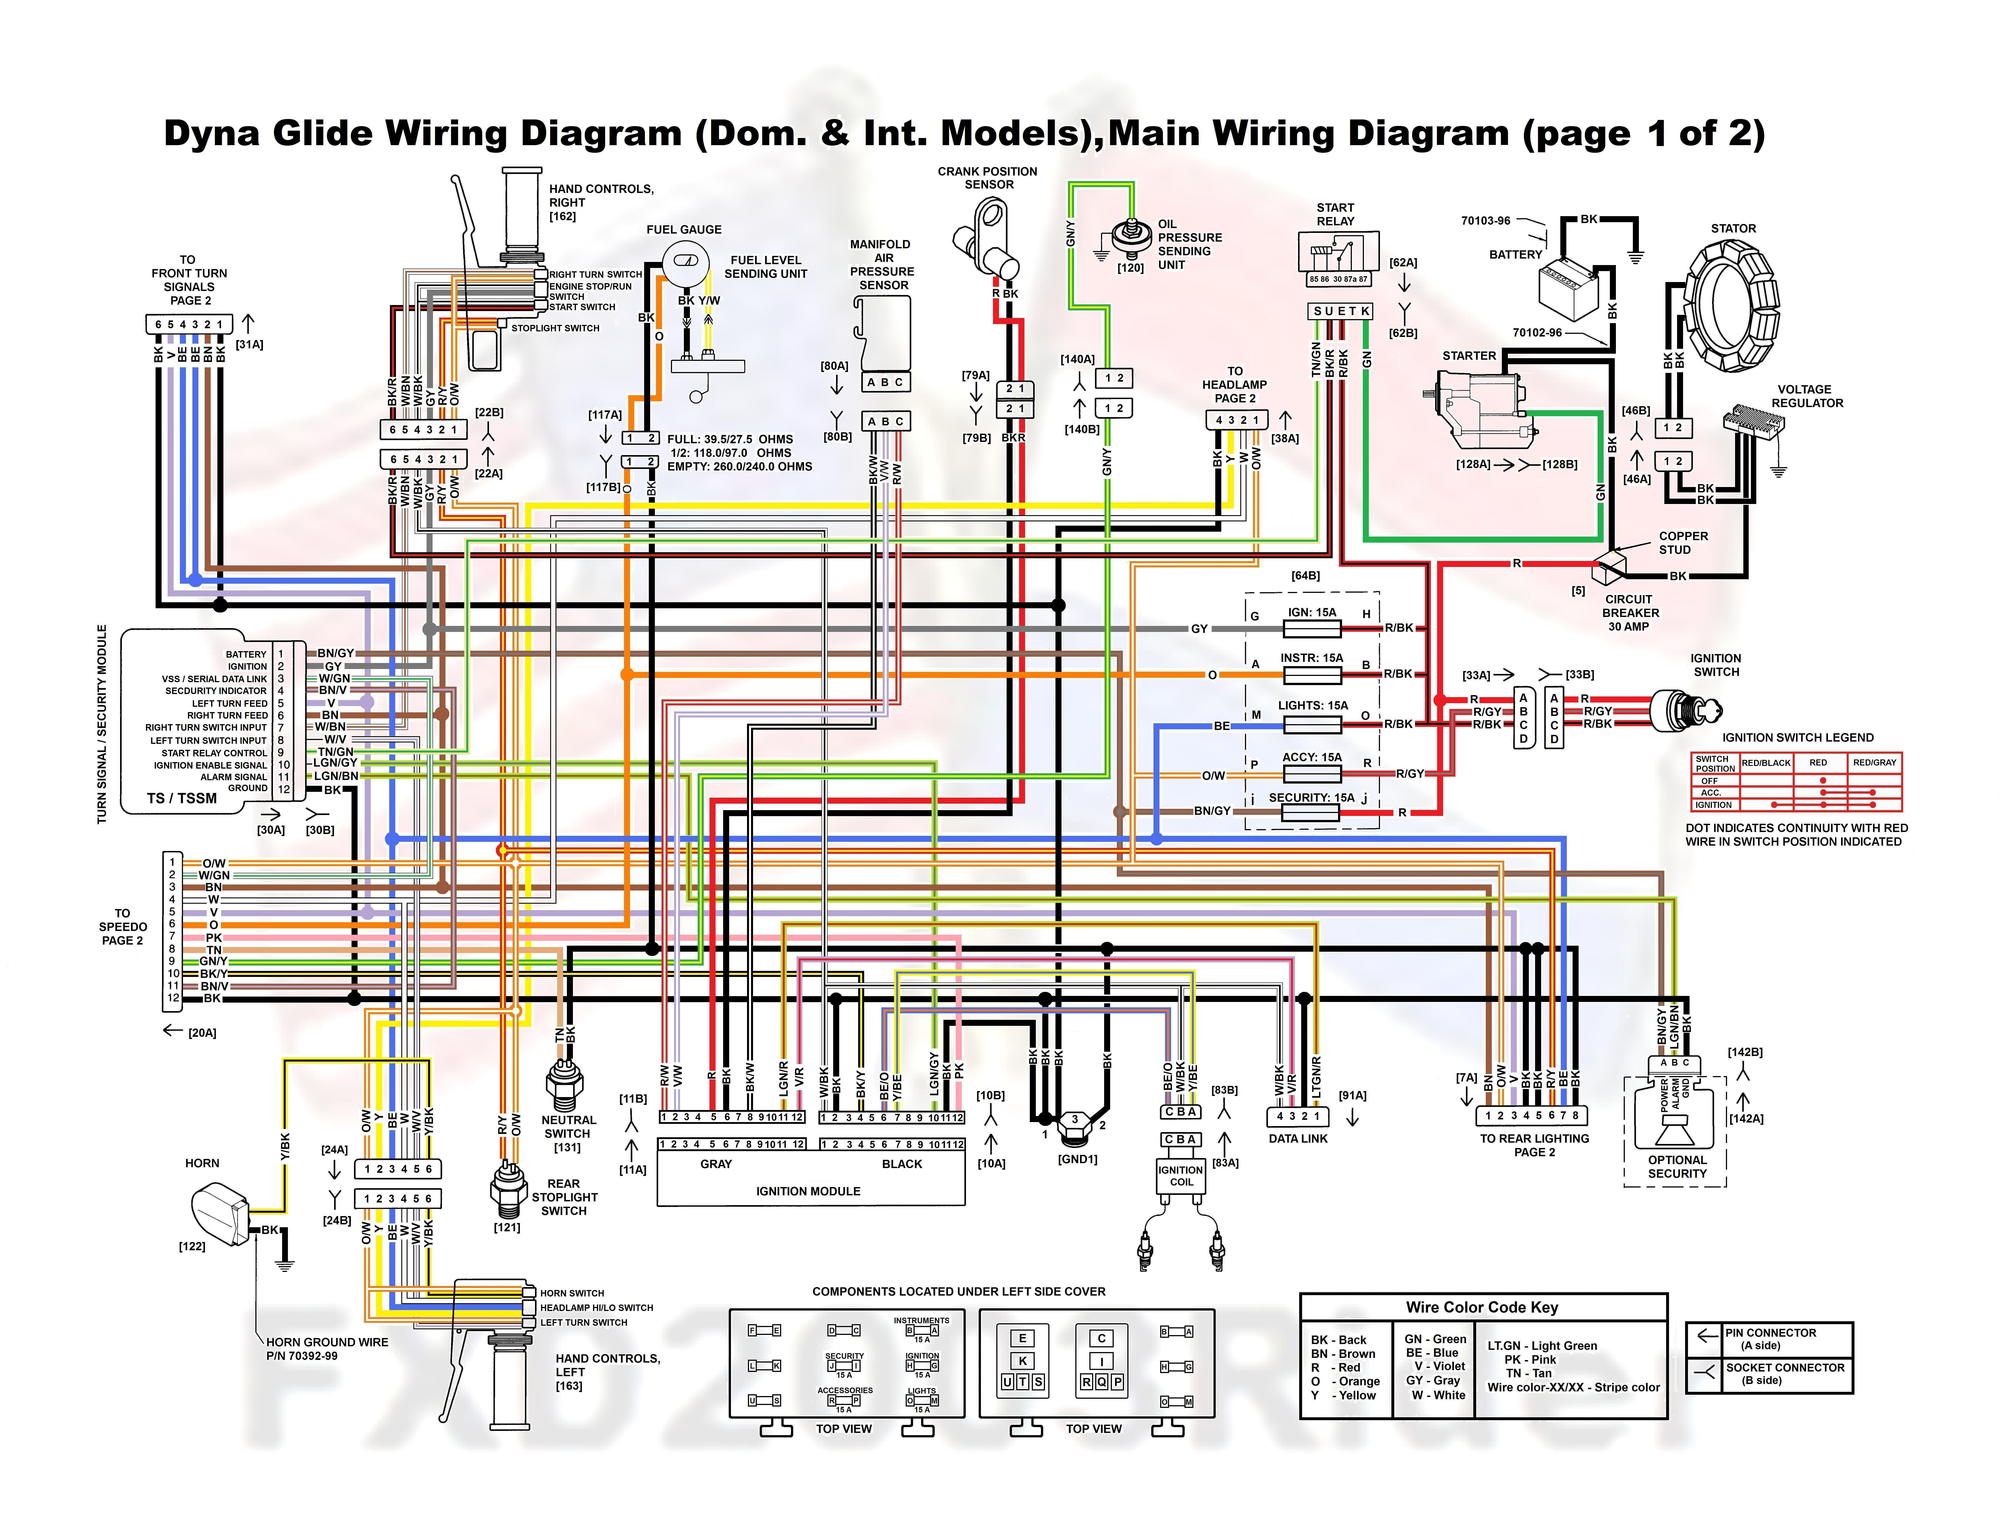 fuse question - harley davidson forums brake light wiring diagram for 1996 harley electra glide